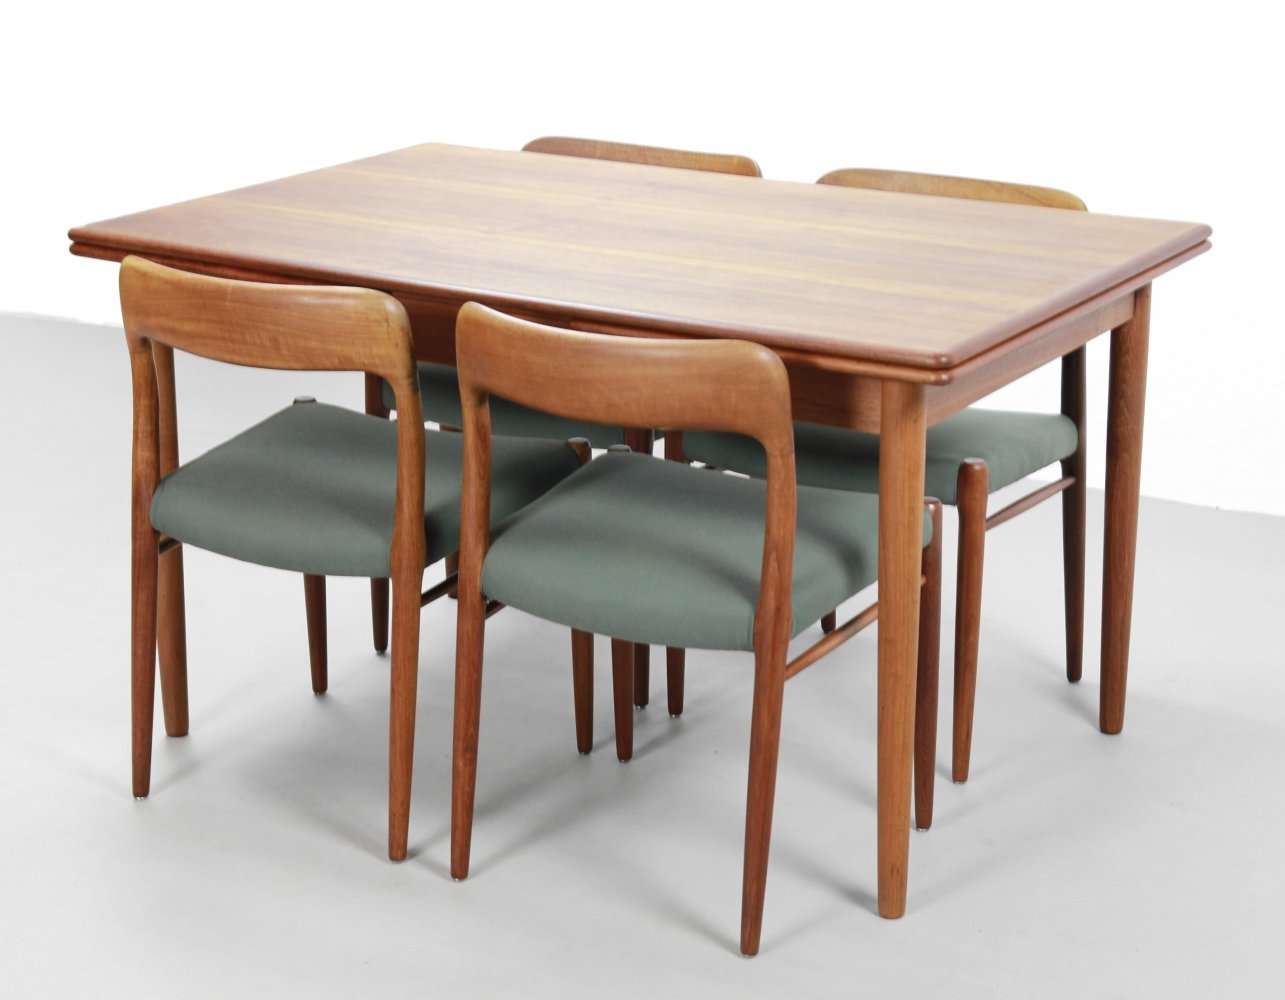 Set of 4 Niels O. Moller chairs + dining table in teak, 1960s